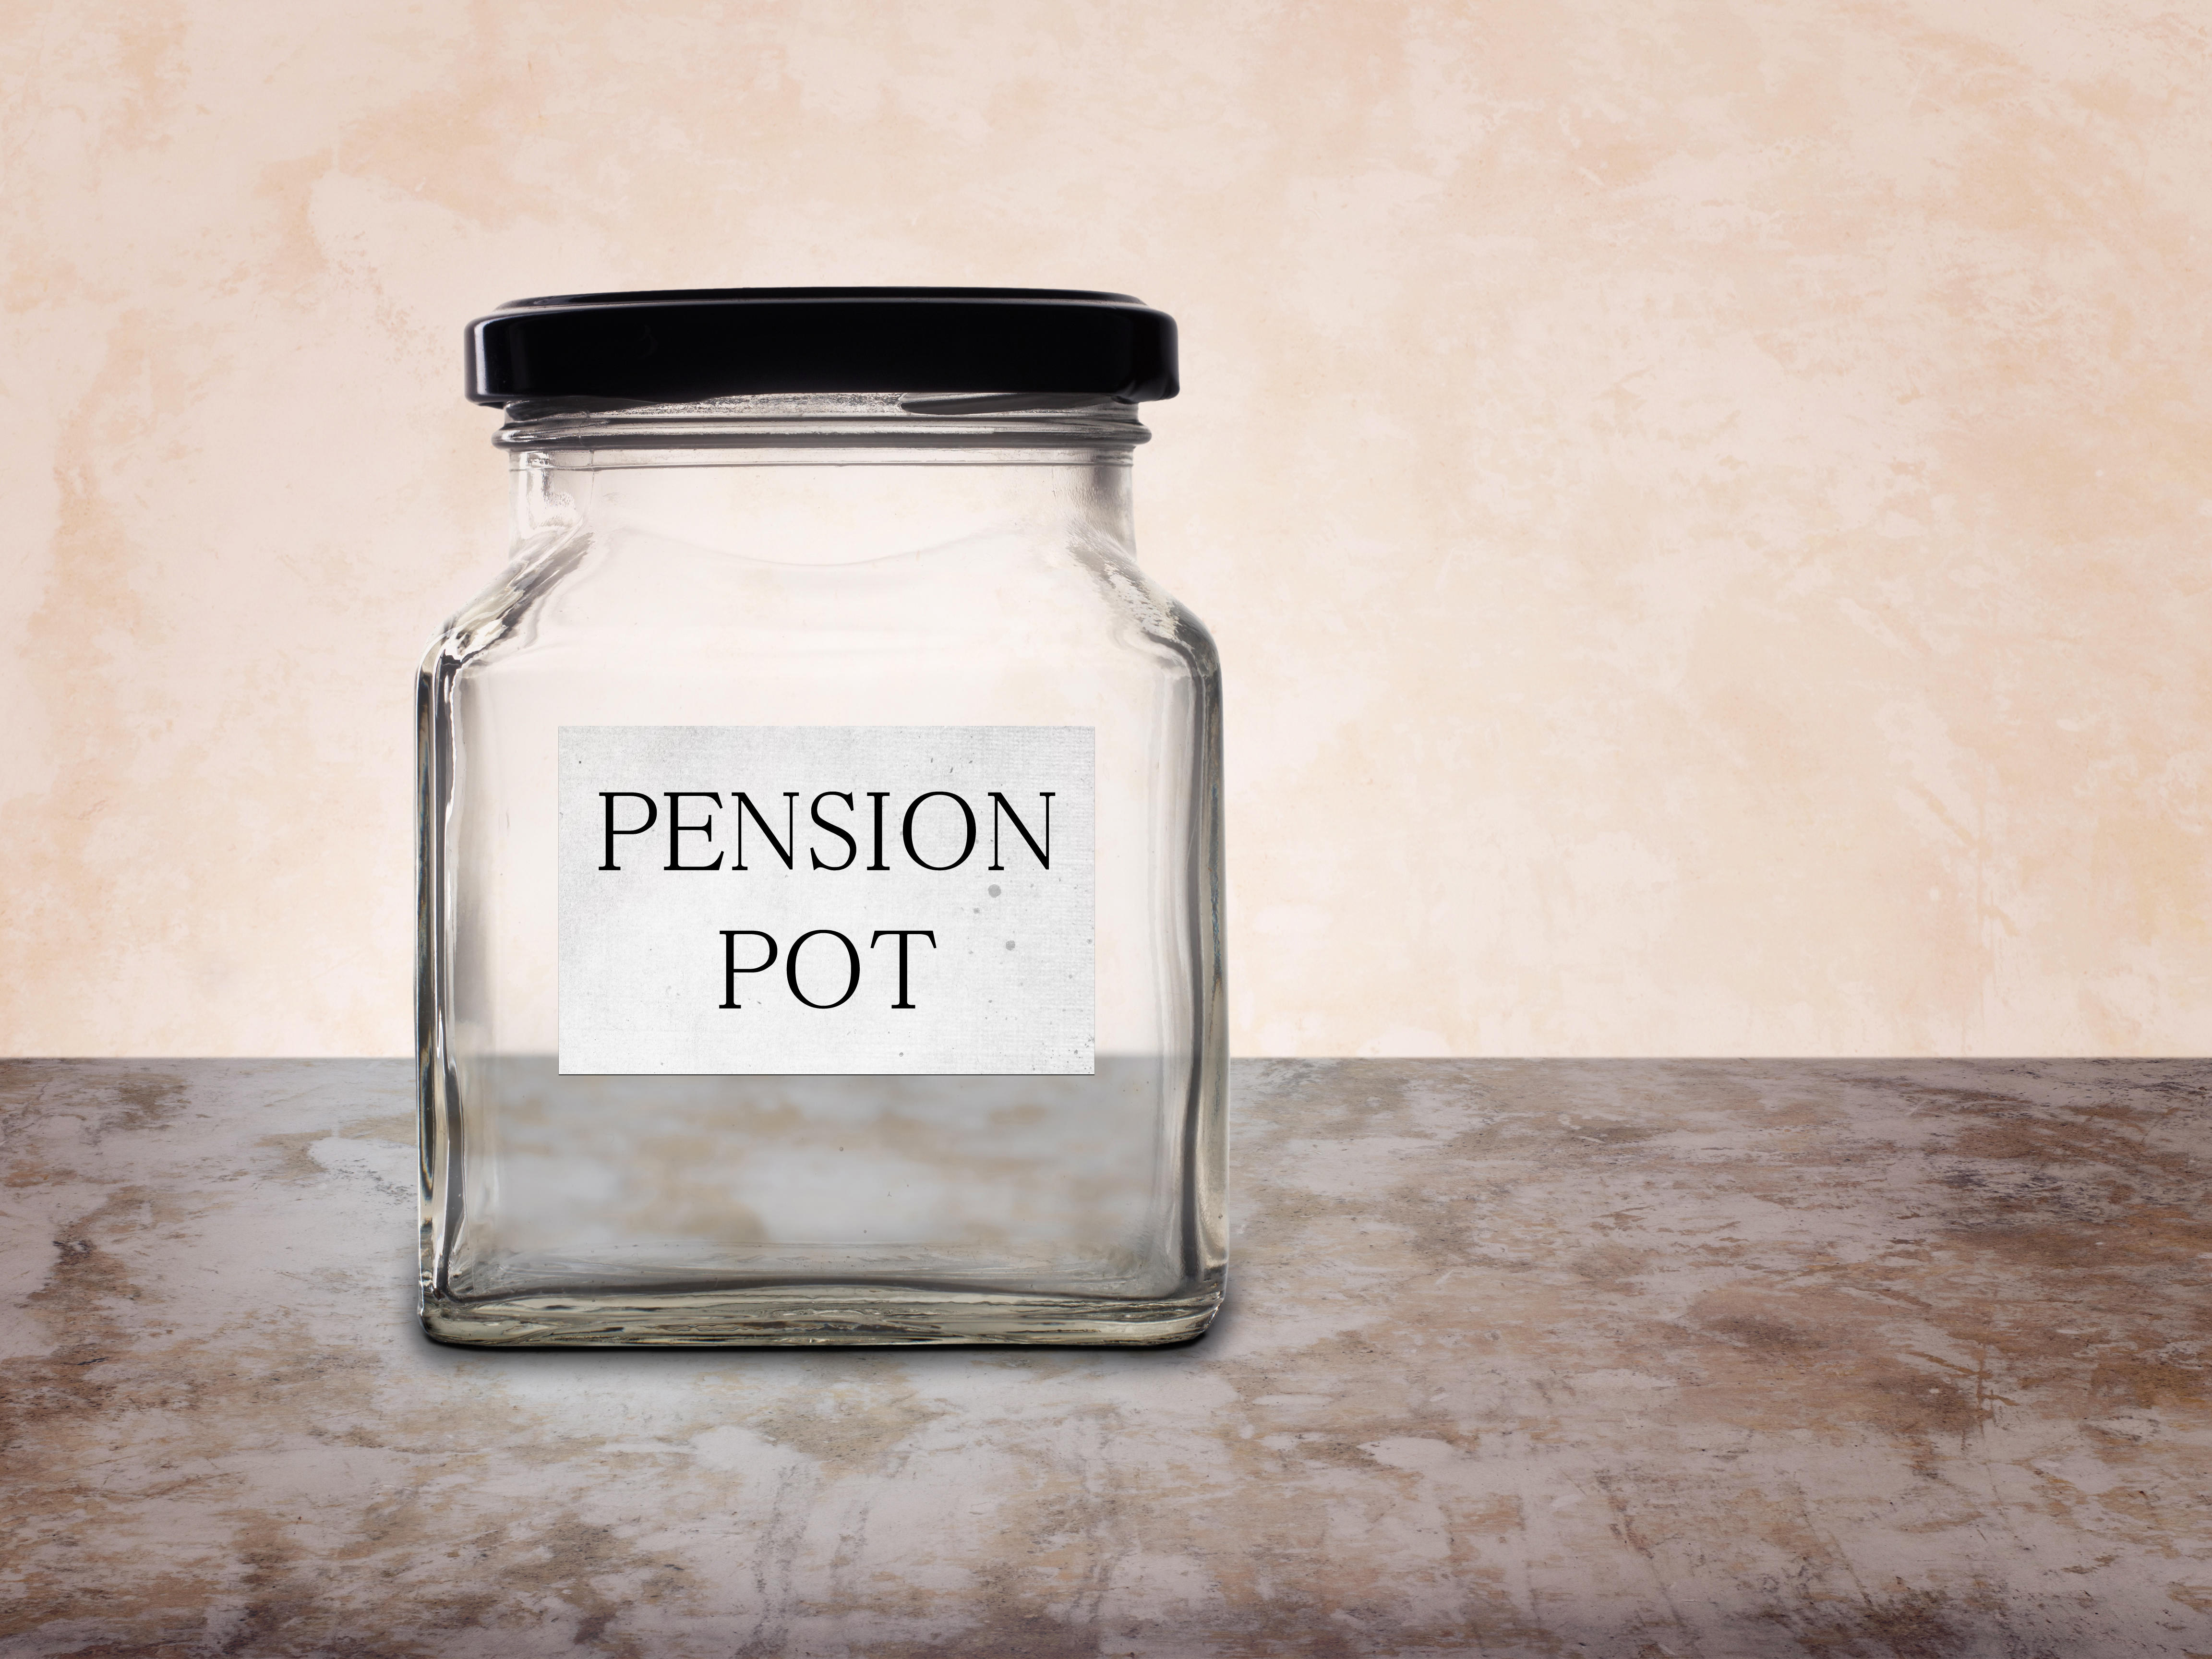 A pension fee shake-up is set to make it cheaper for hundreds of thousands of savers to access cash in auto-enrolment pots